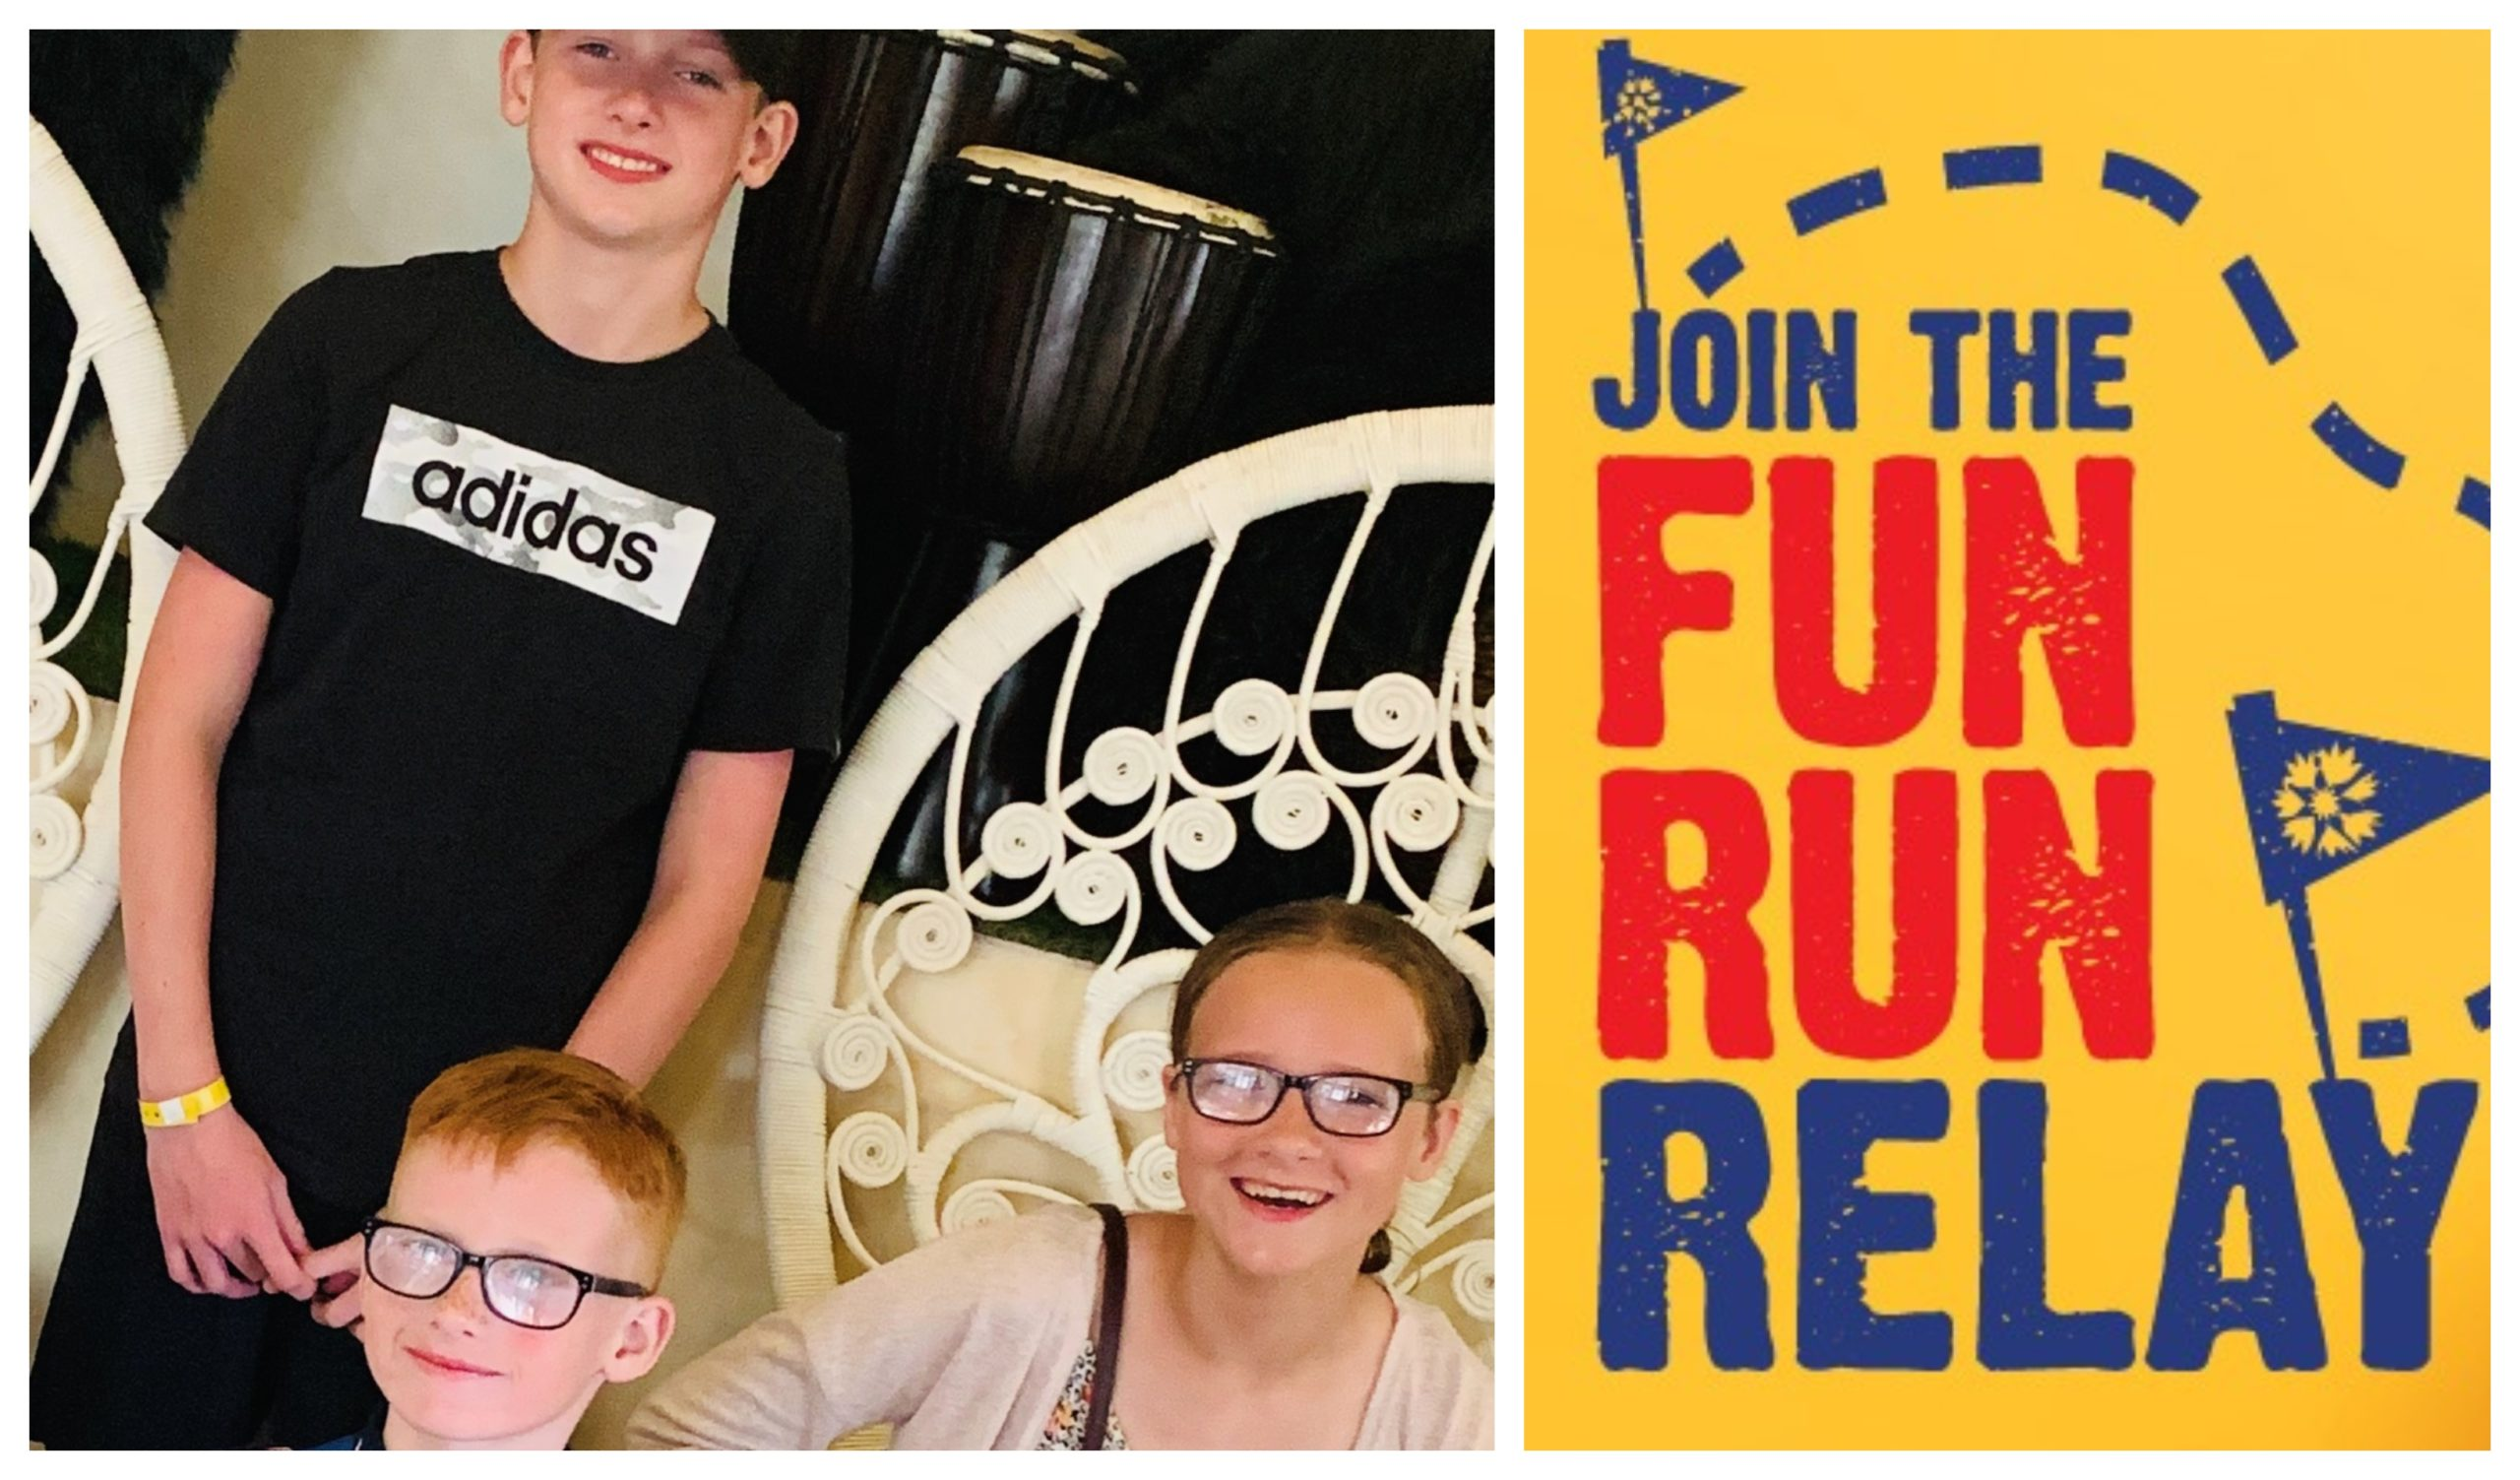 The McGaw children are taking part in the Fun Run Relay